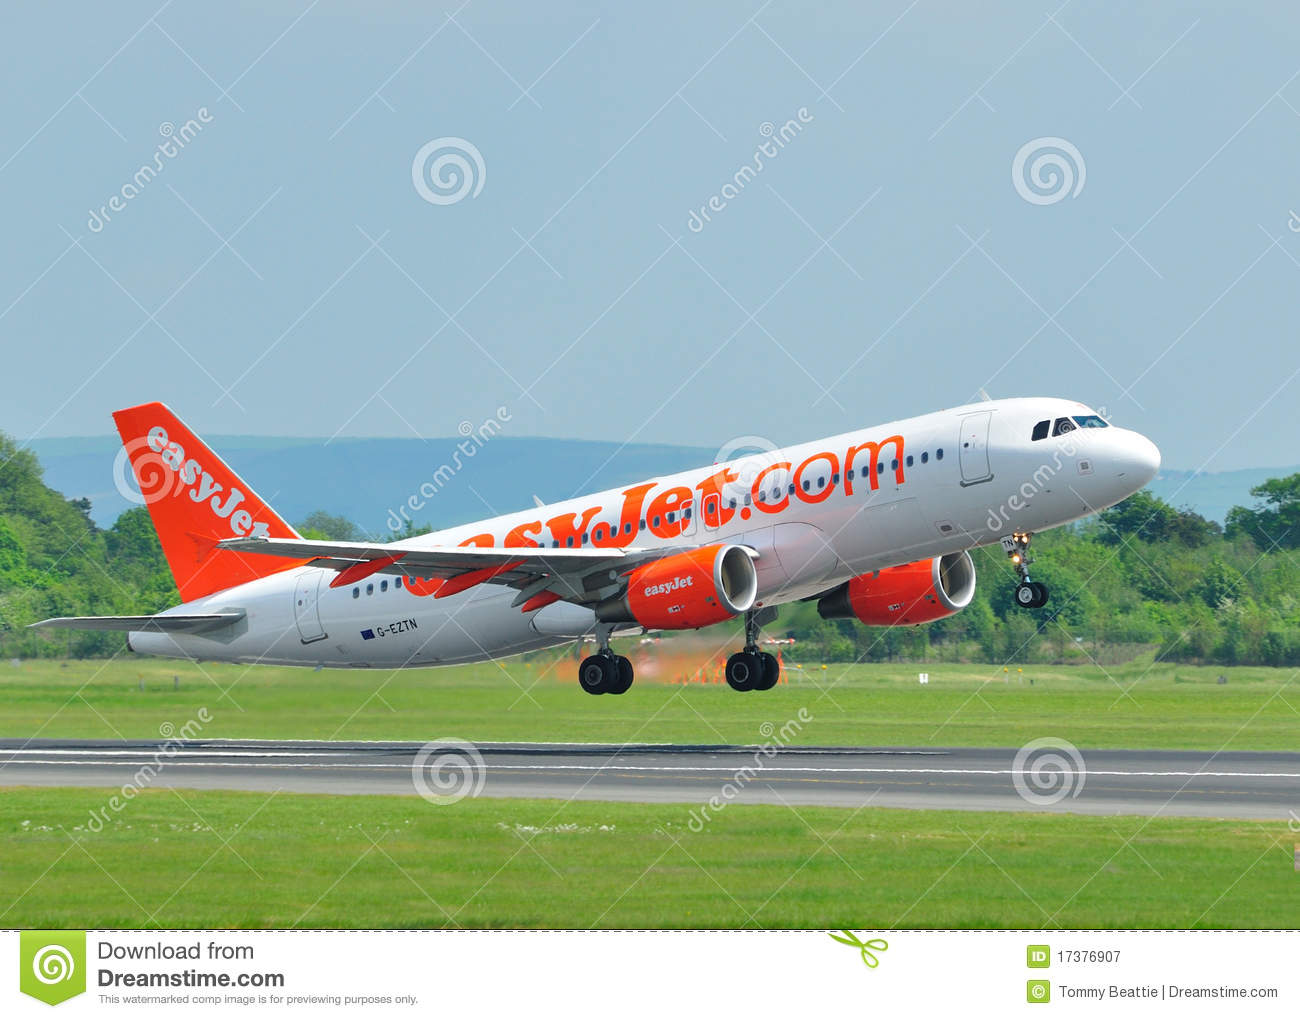 Easyjet airbus a320 photographie ditorial image 17376907 for Interieur avion easyjet